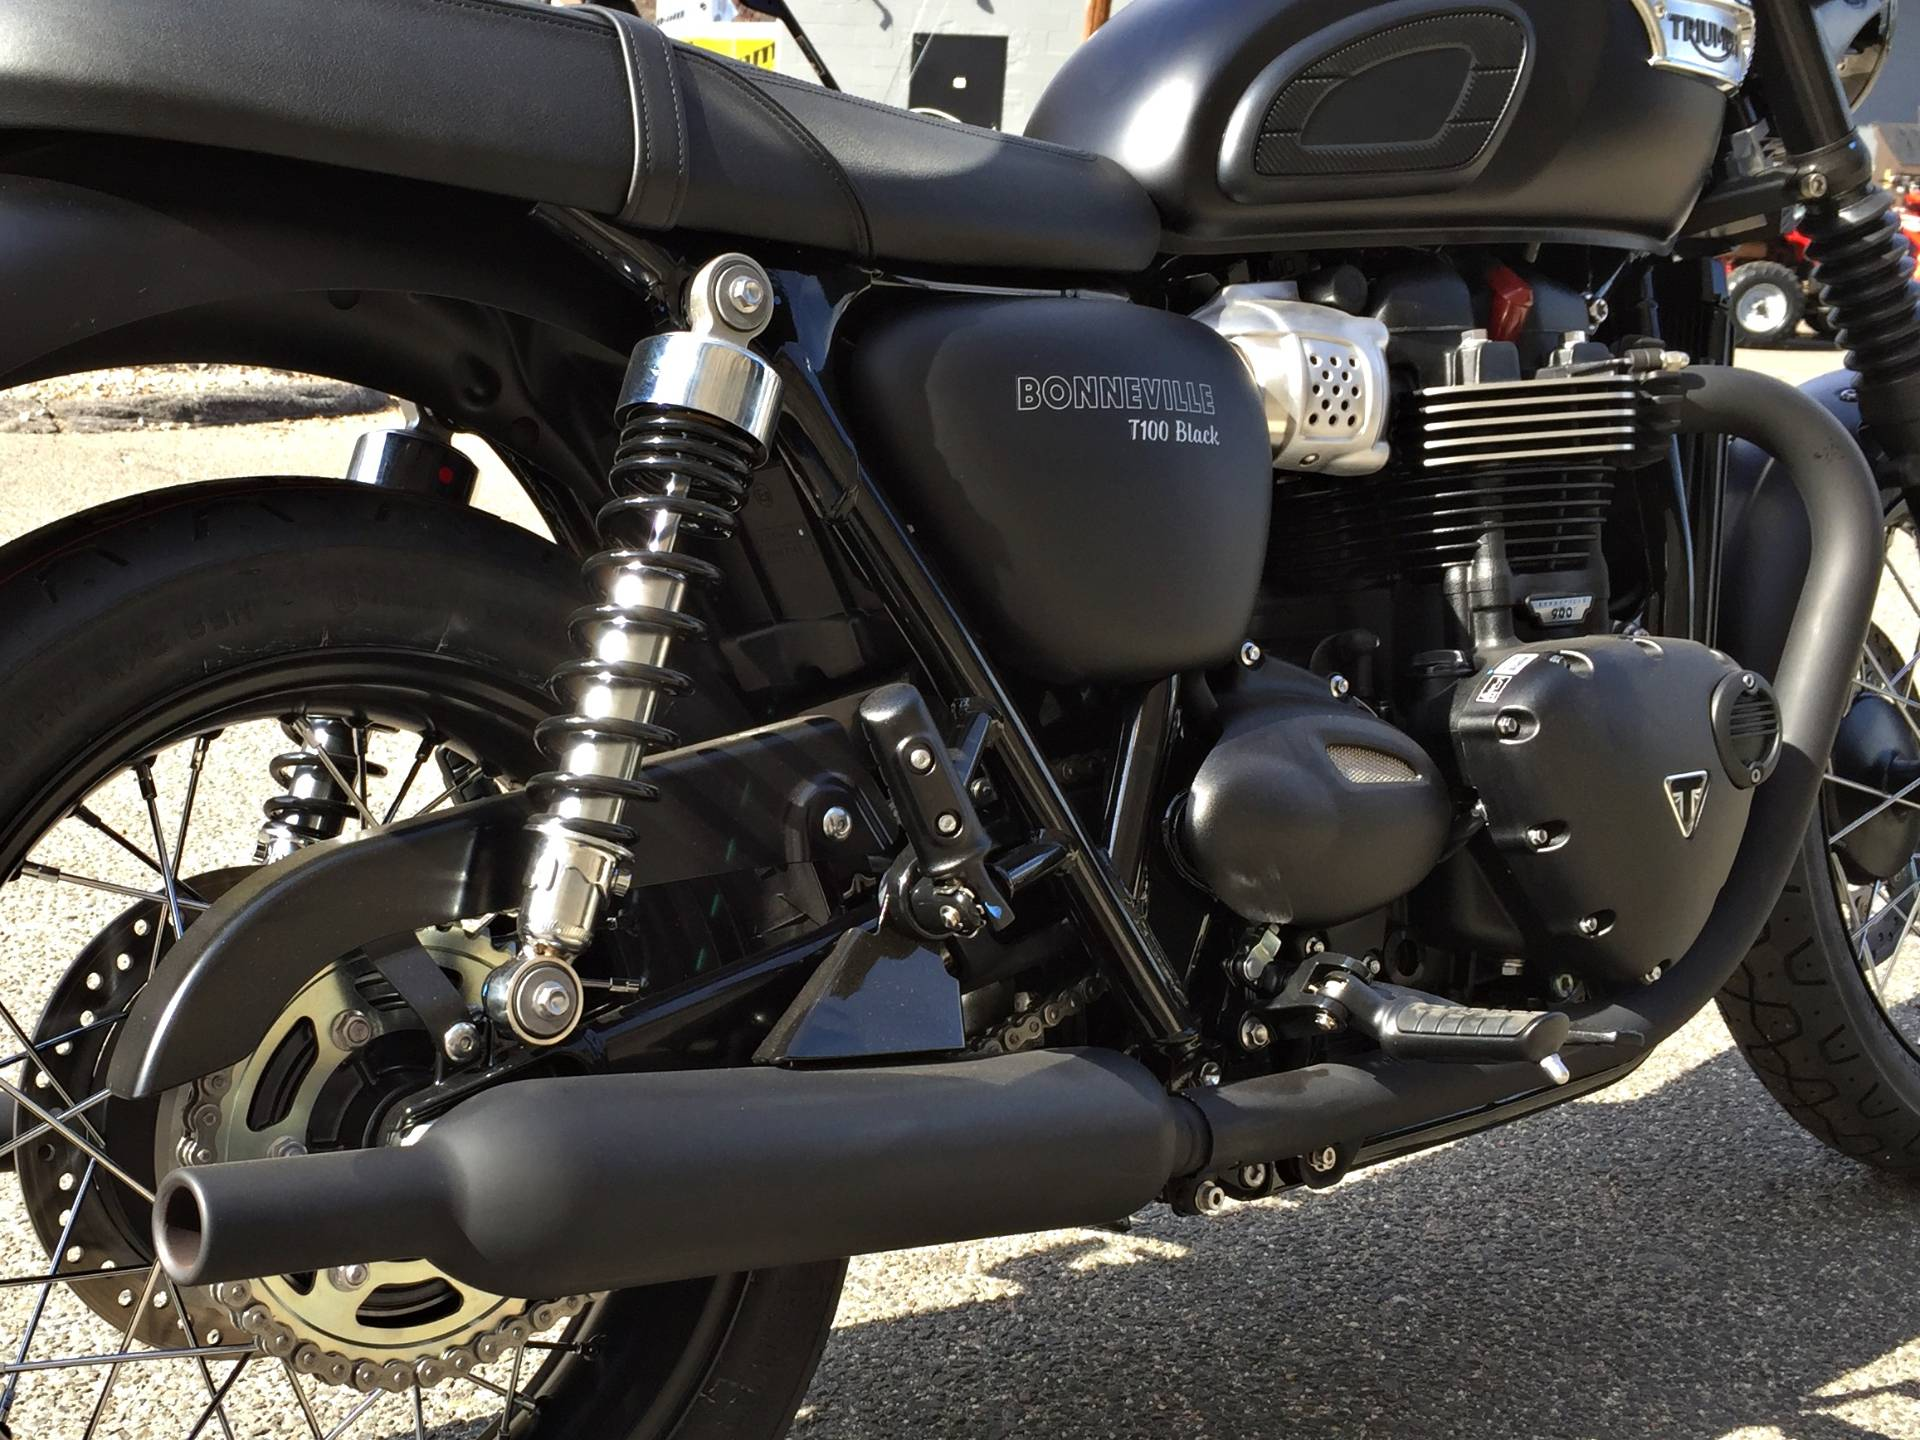 2017 Triumph Bonneville T100 Black in Enfield, Connecticut